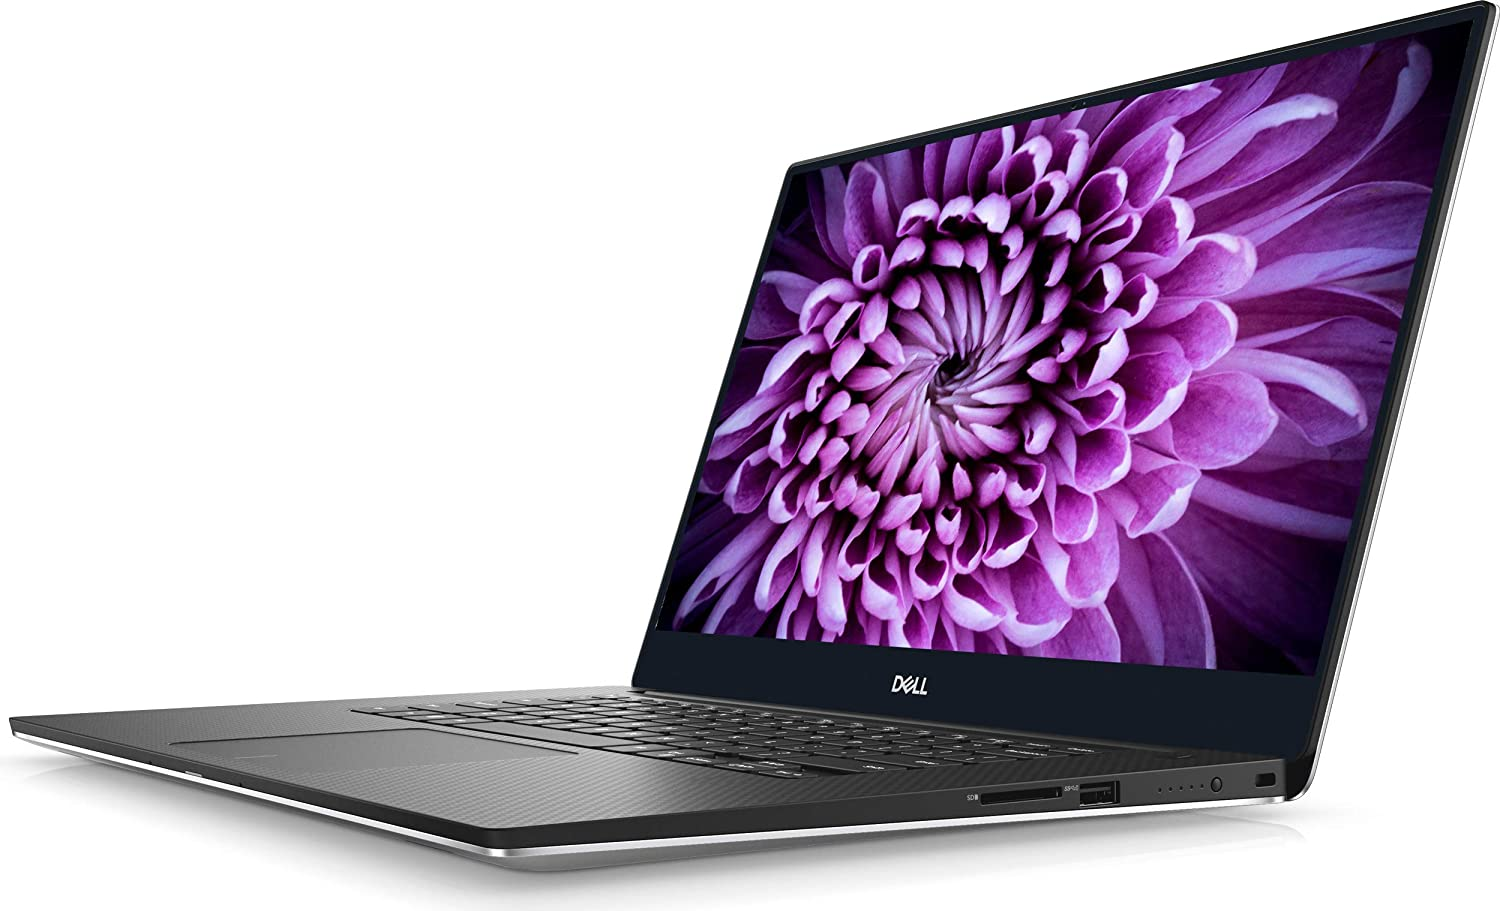 "2019 Dell XPS 15 7590 Laptop 15.6"" Intel i7-9750H NVIDIA GTX 1650 512GB SSD 16GB RAM 4K UHD Non Touch (3840 x 2160) 400-Nits Windows 10 PRO (Renewed)"